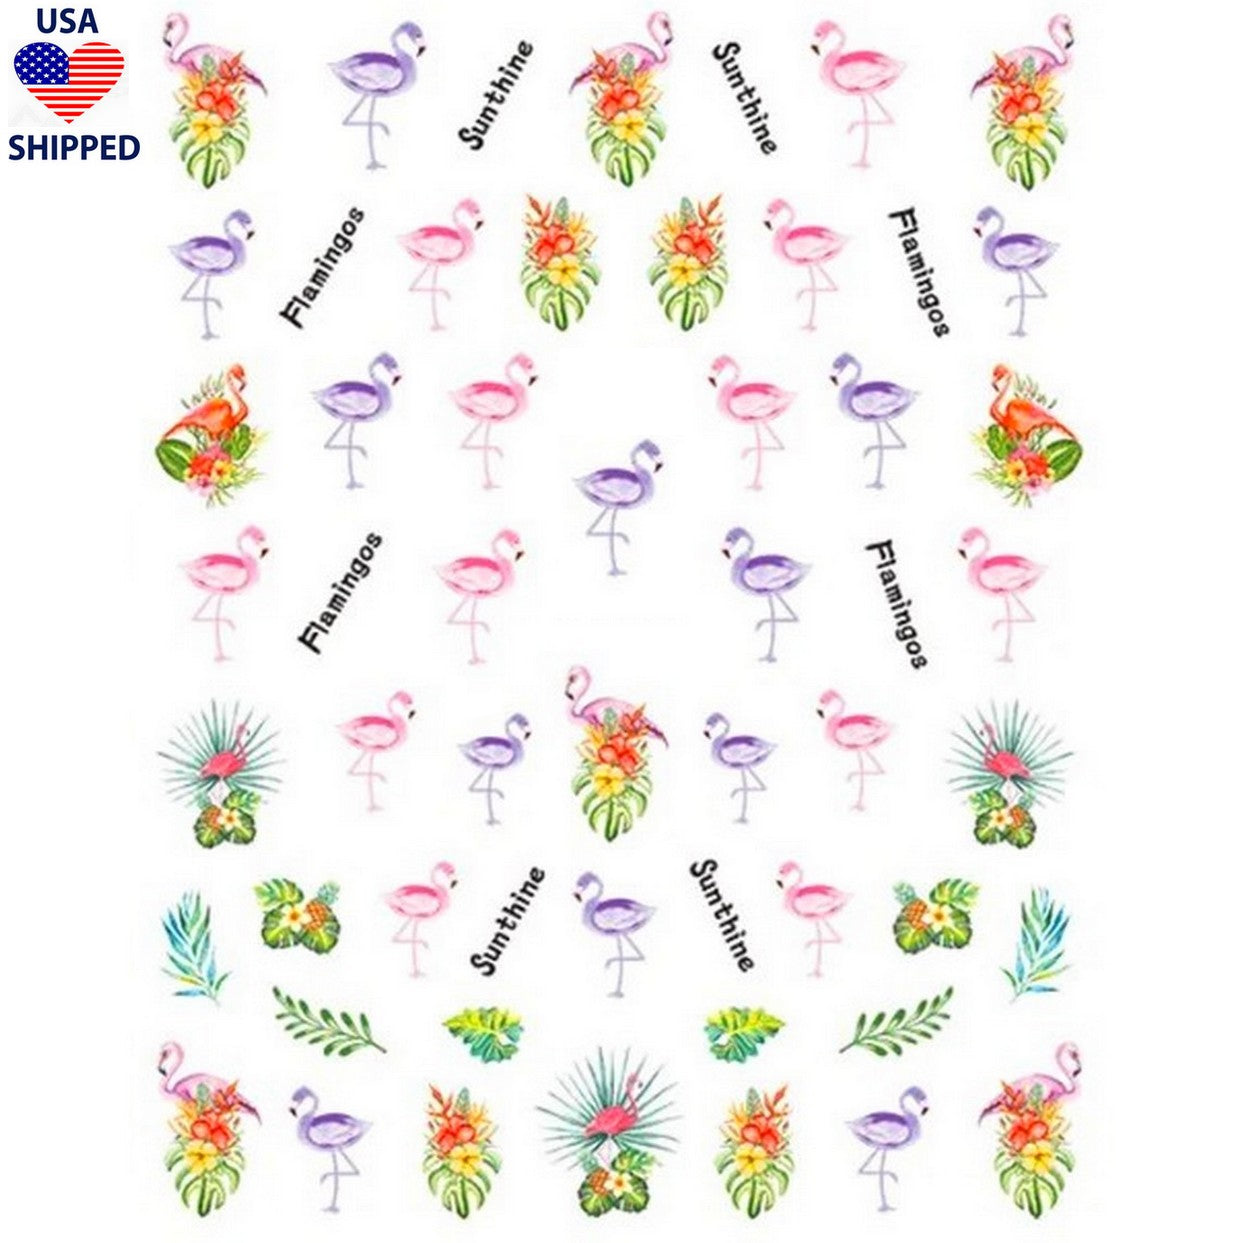 (USA) Summer Flamingos Nail Stickers